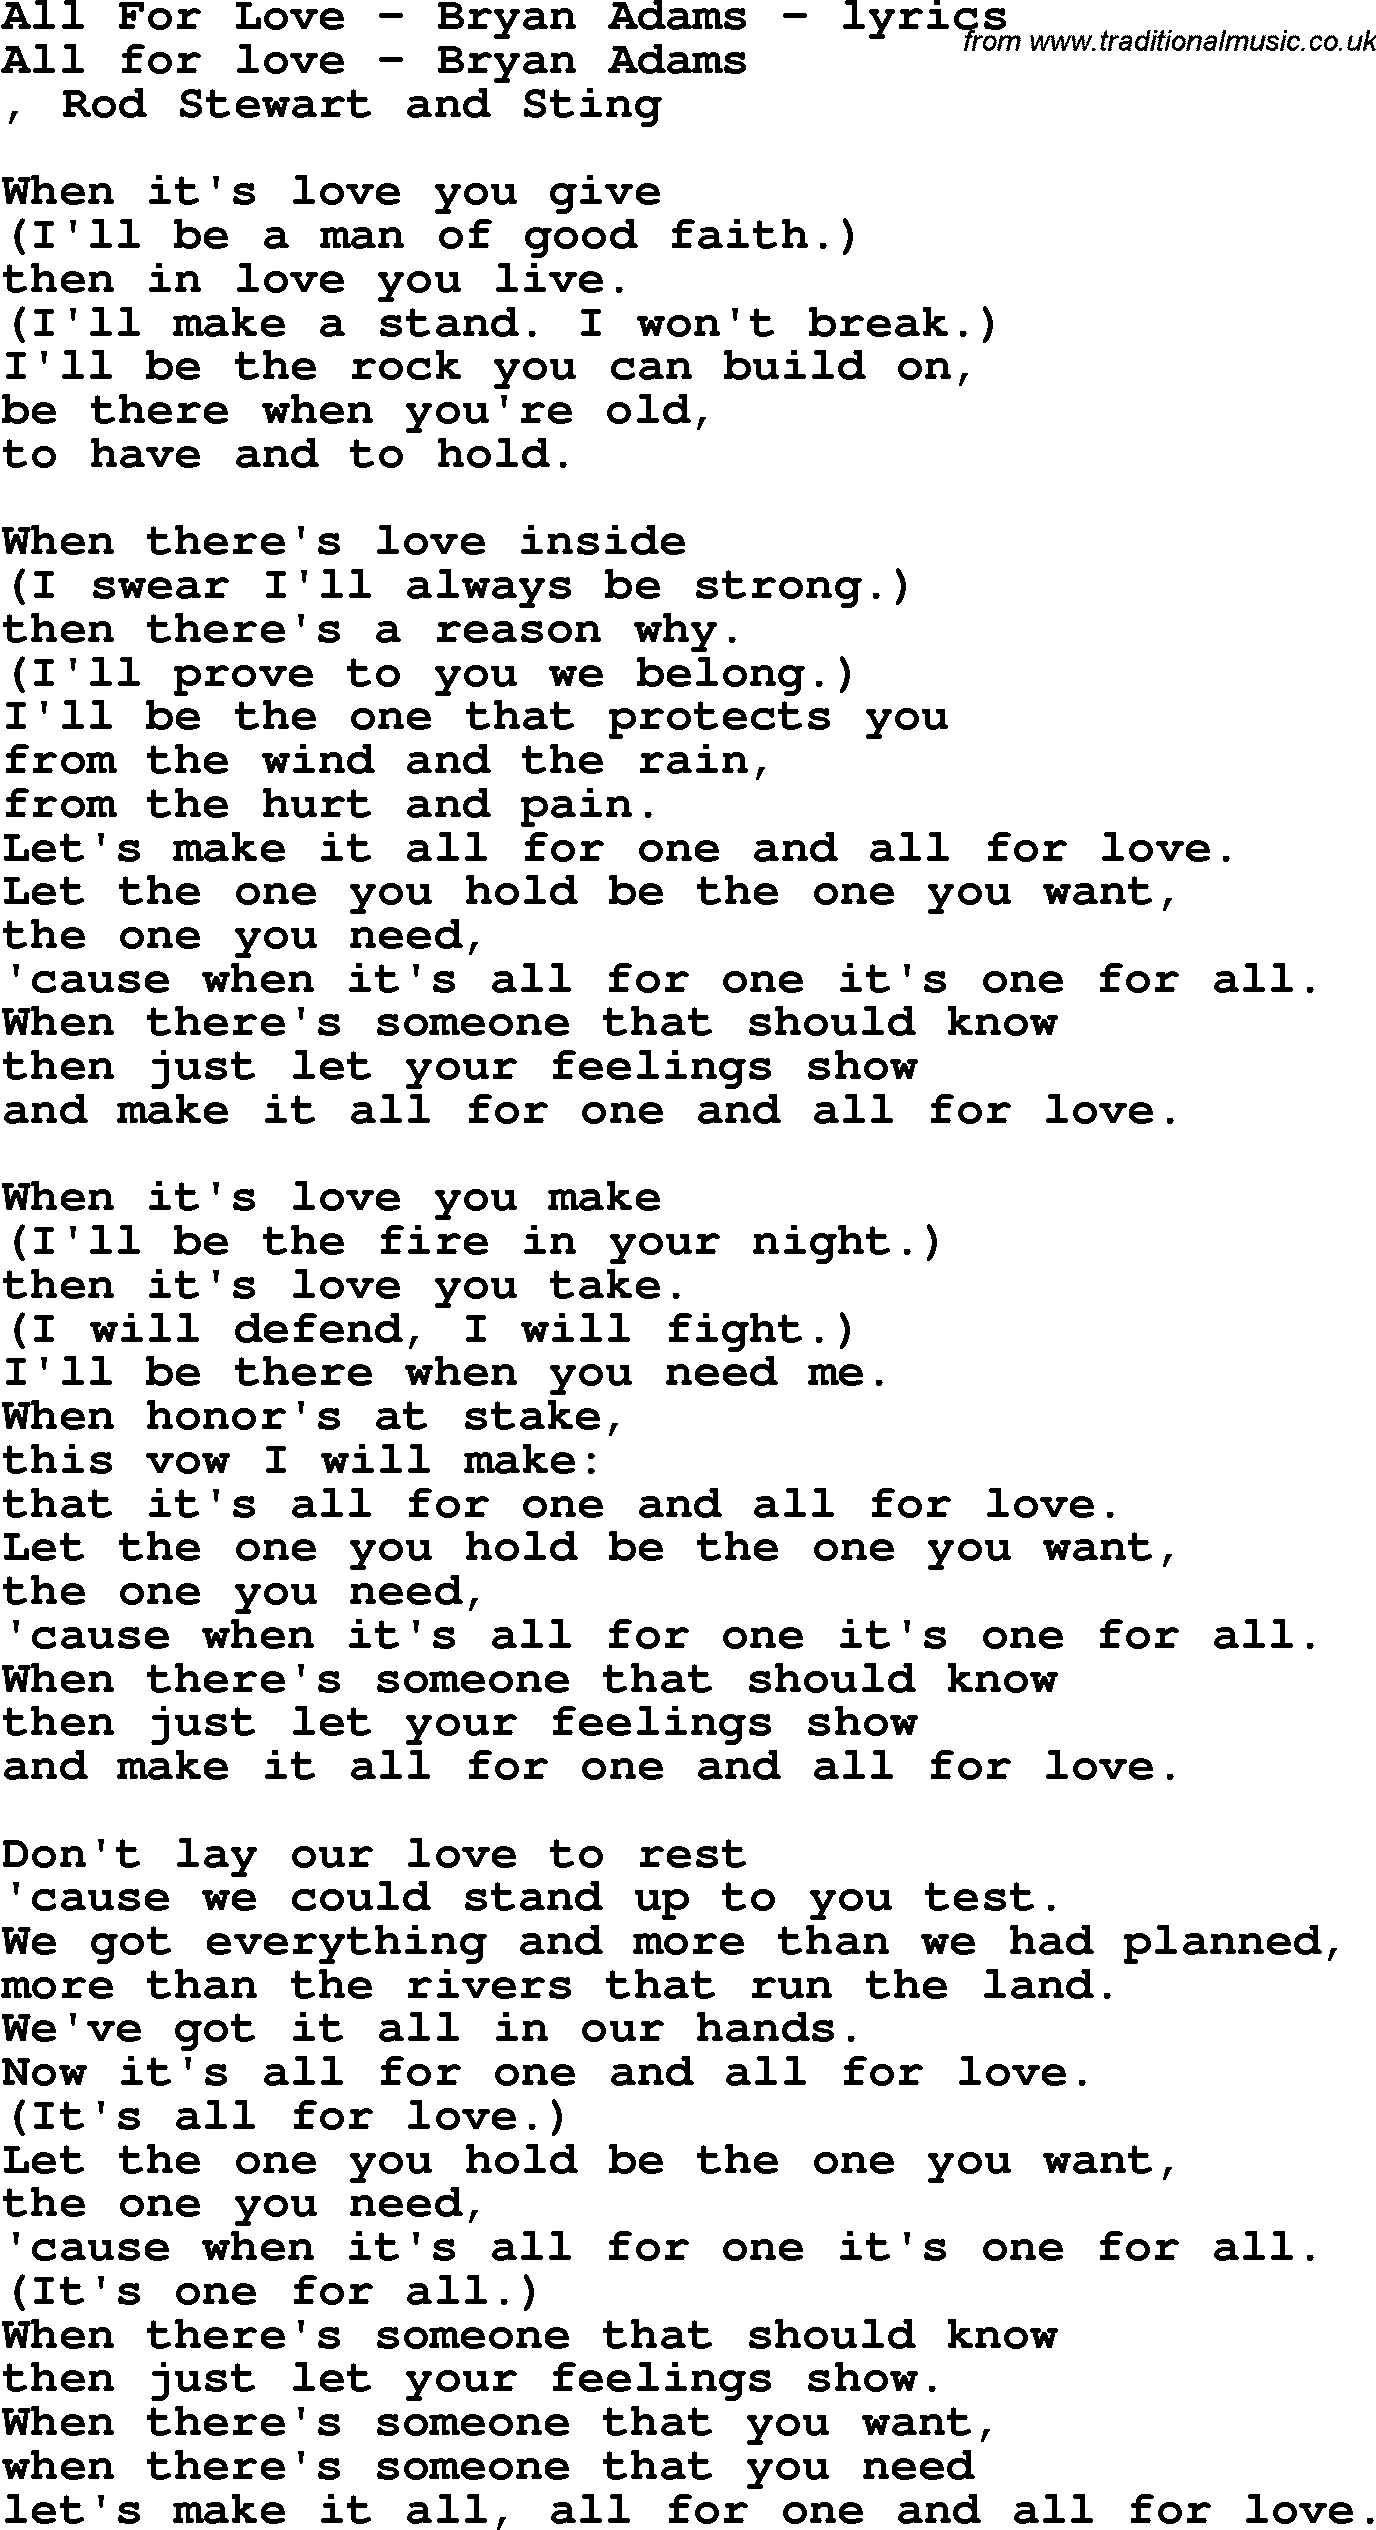 Songtext von Bryan Adams - All for Love Lyrics